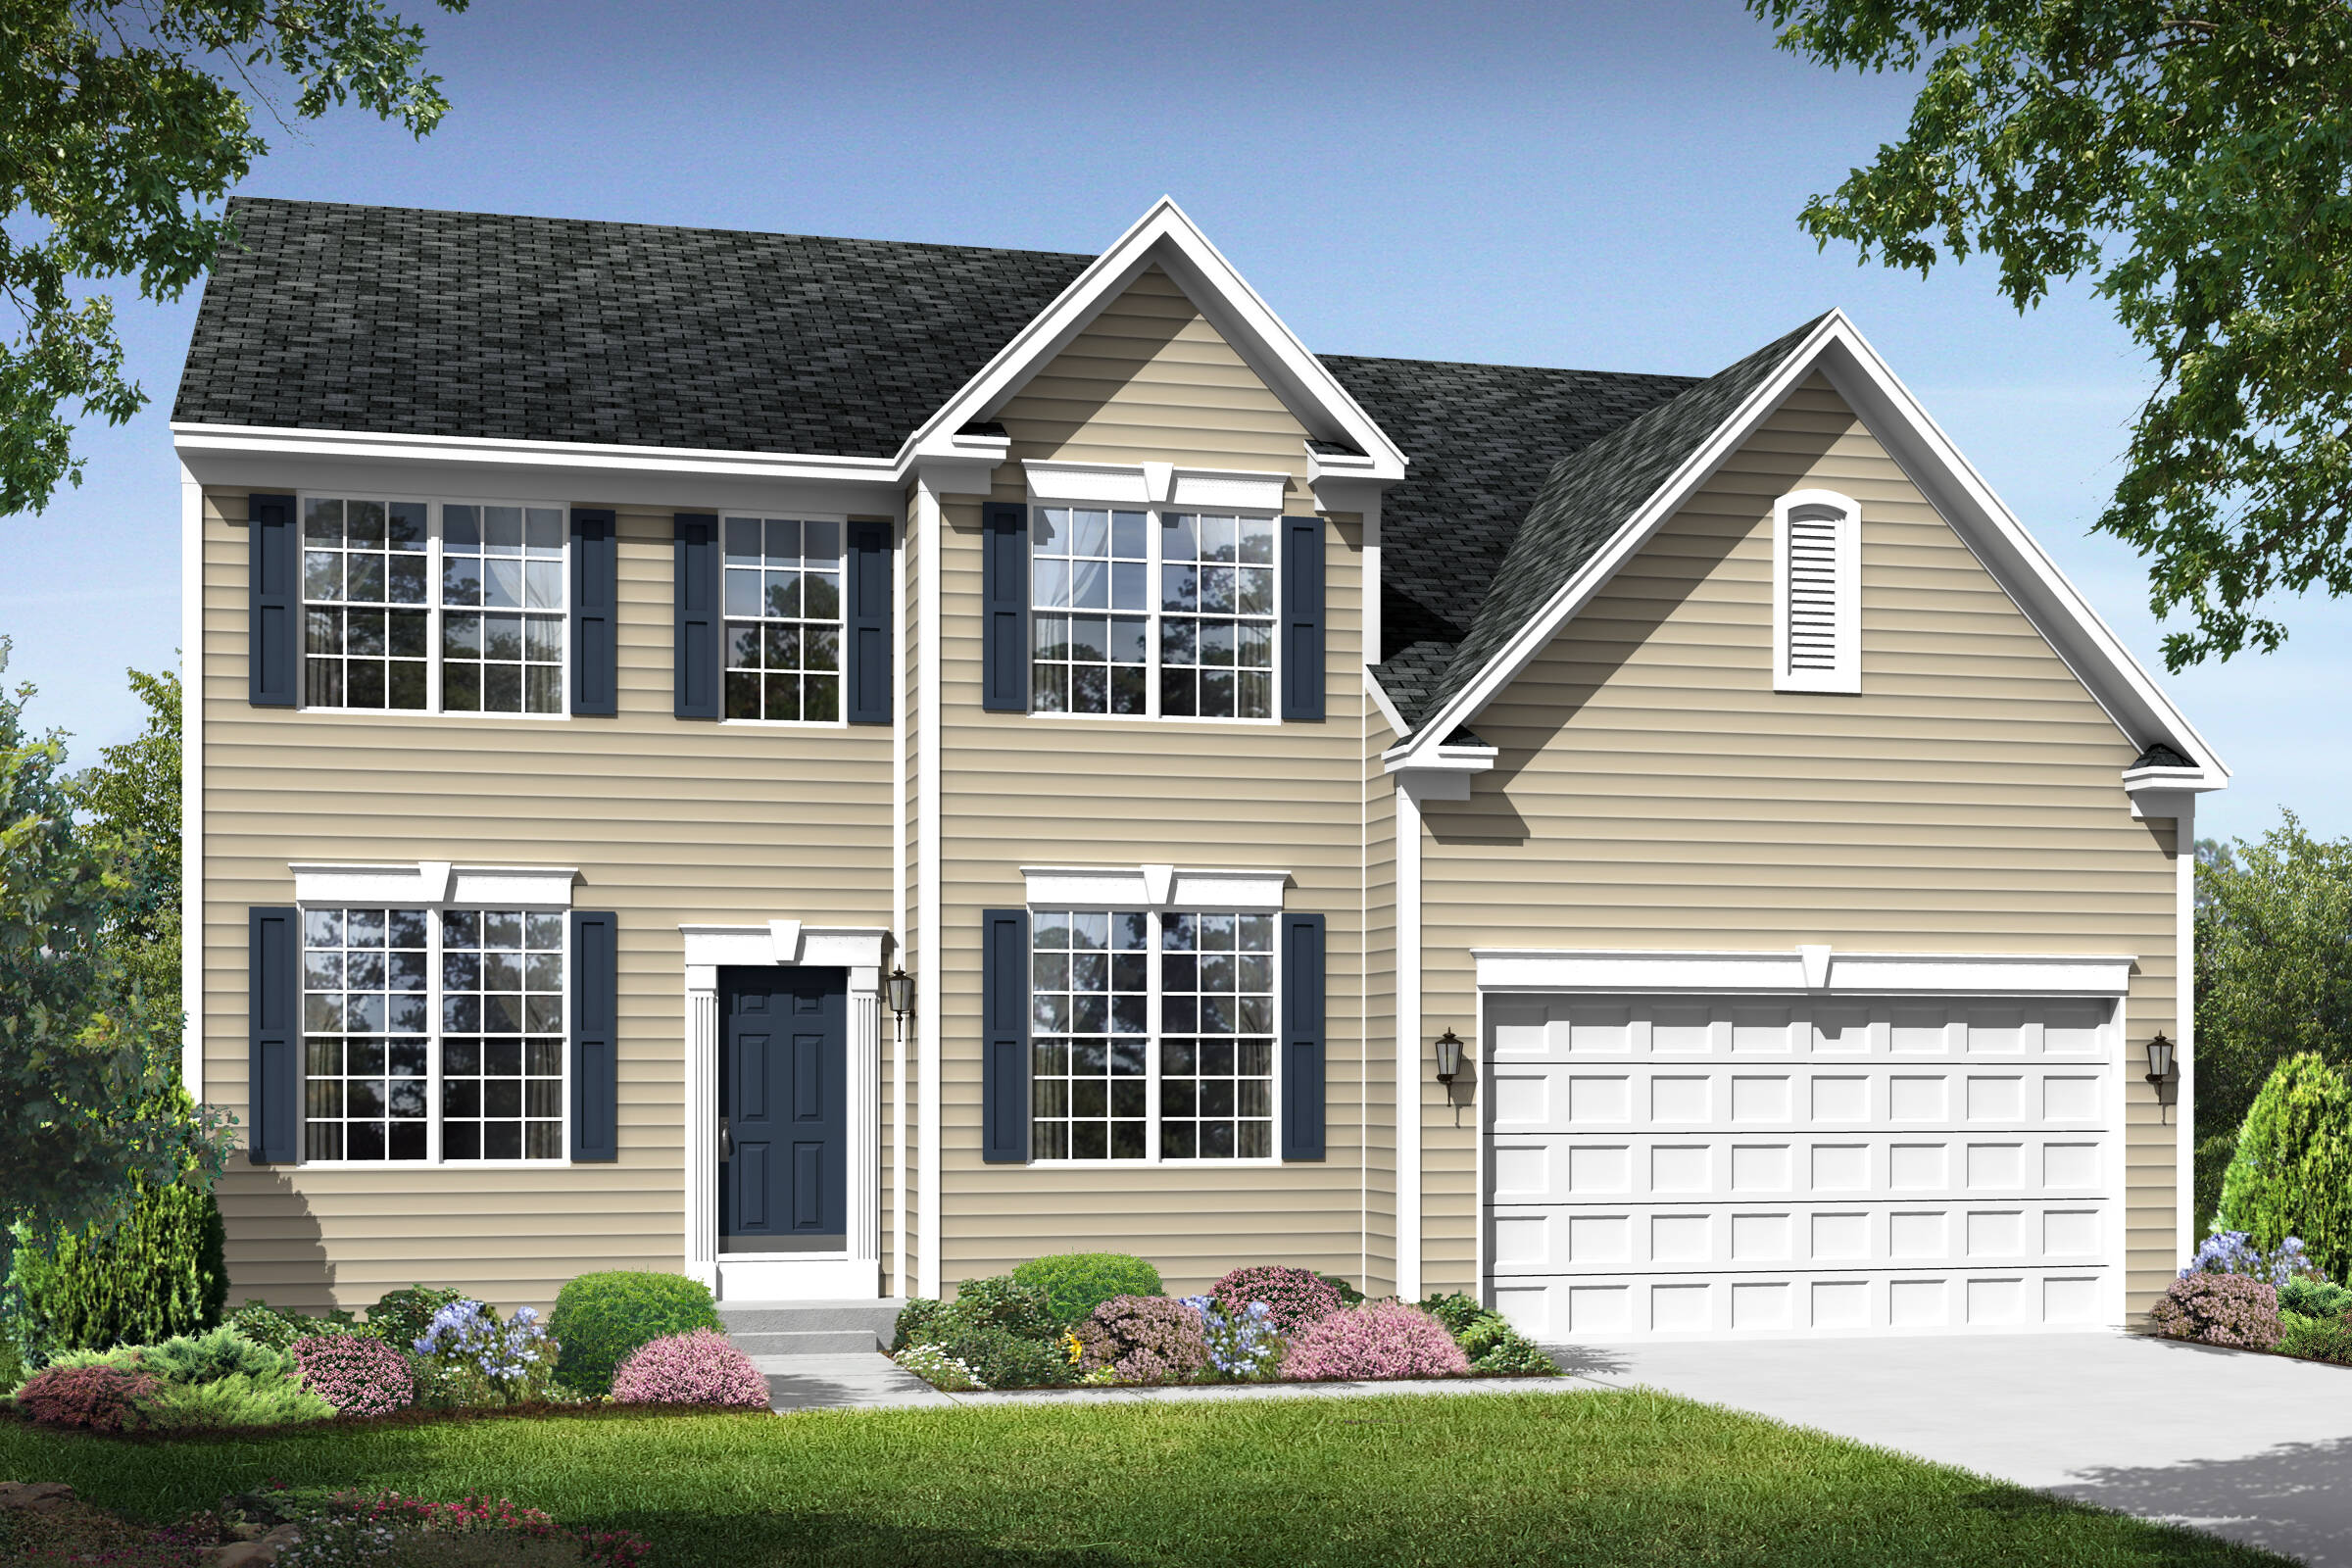 maryland II traditional new homes at shenandoah springs in west virginia